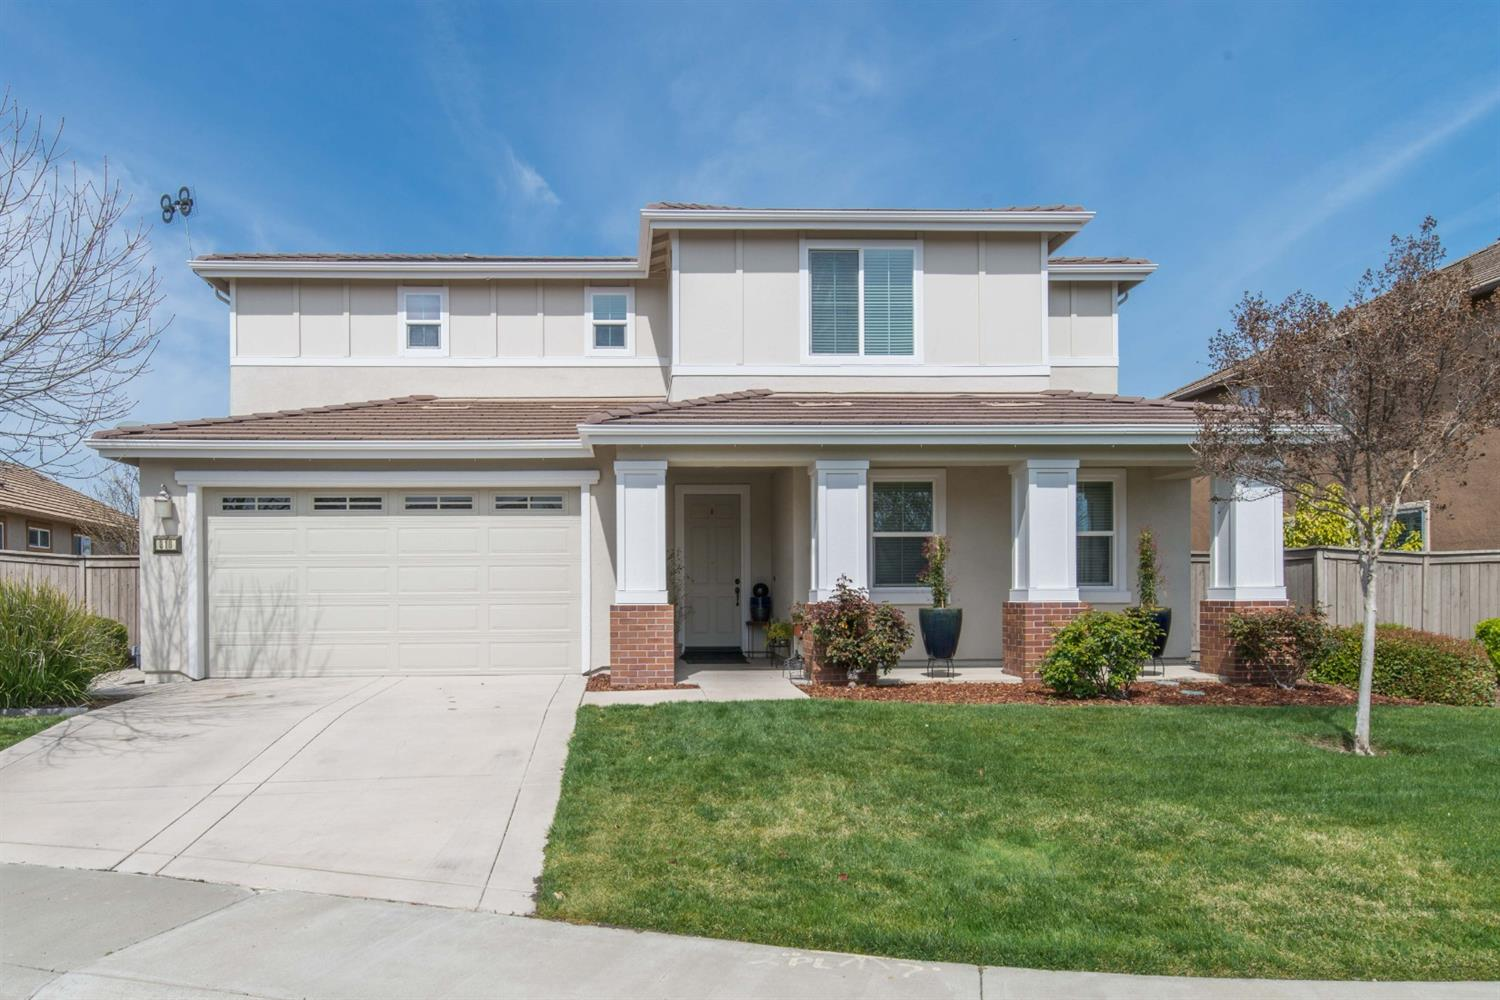 Photo of 616 Blakesley Court, Roseville, CA 95747